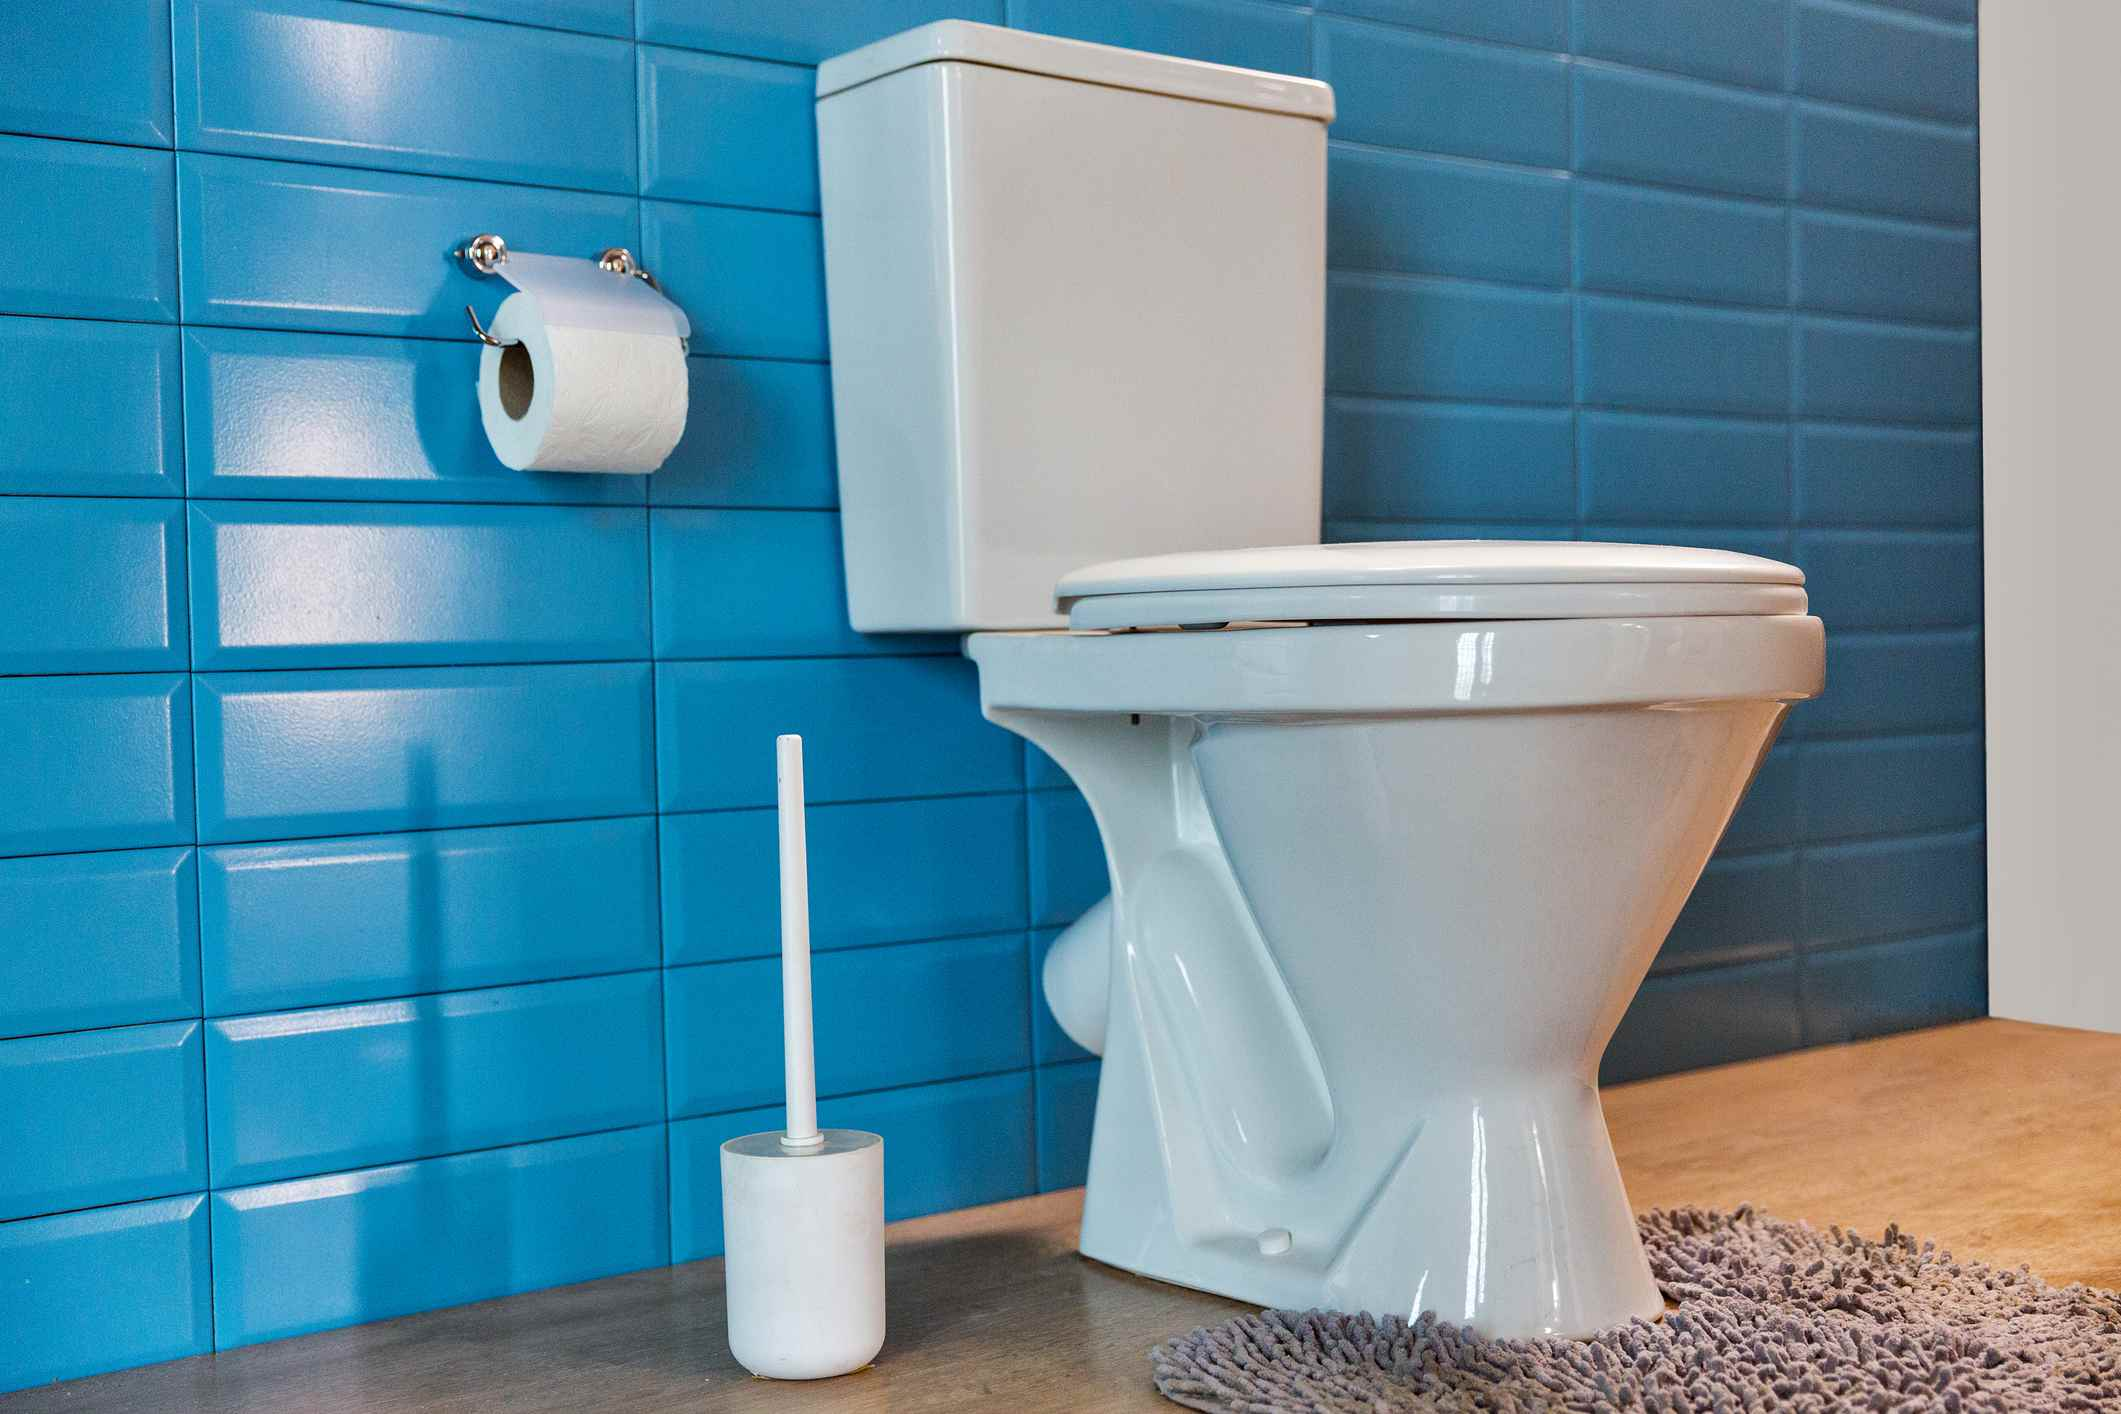 Toilet against blue wall